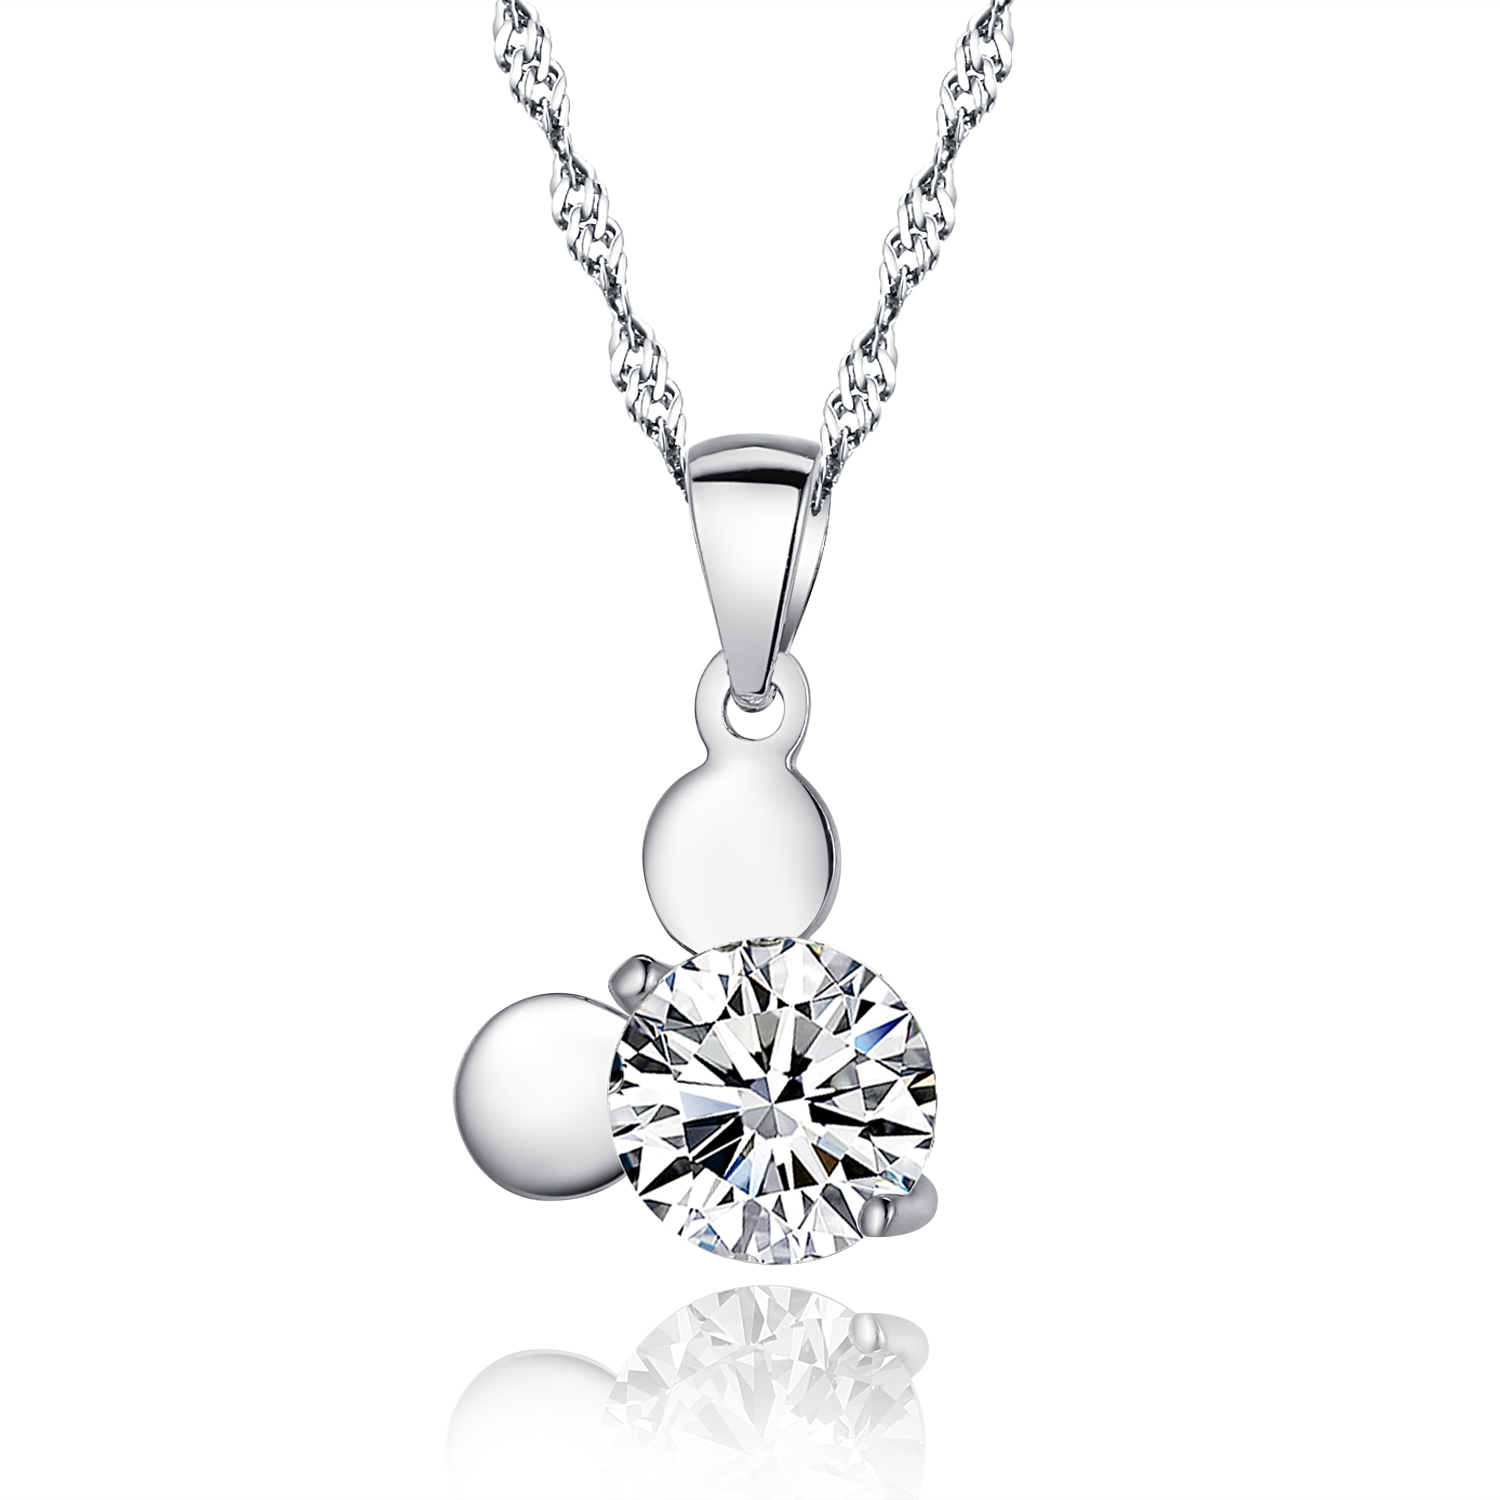 genuine sterling 925 silver pendant necklace jewelry with